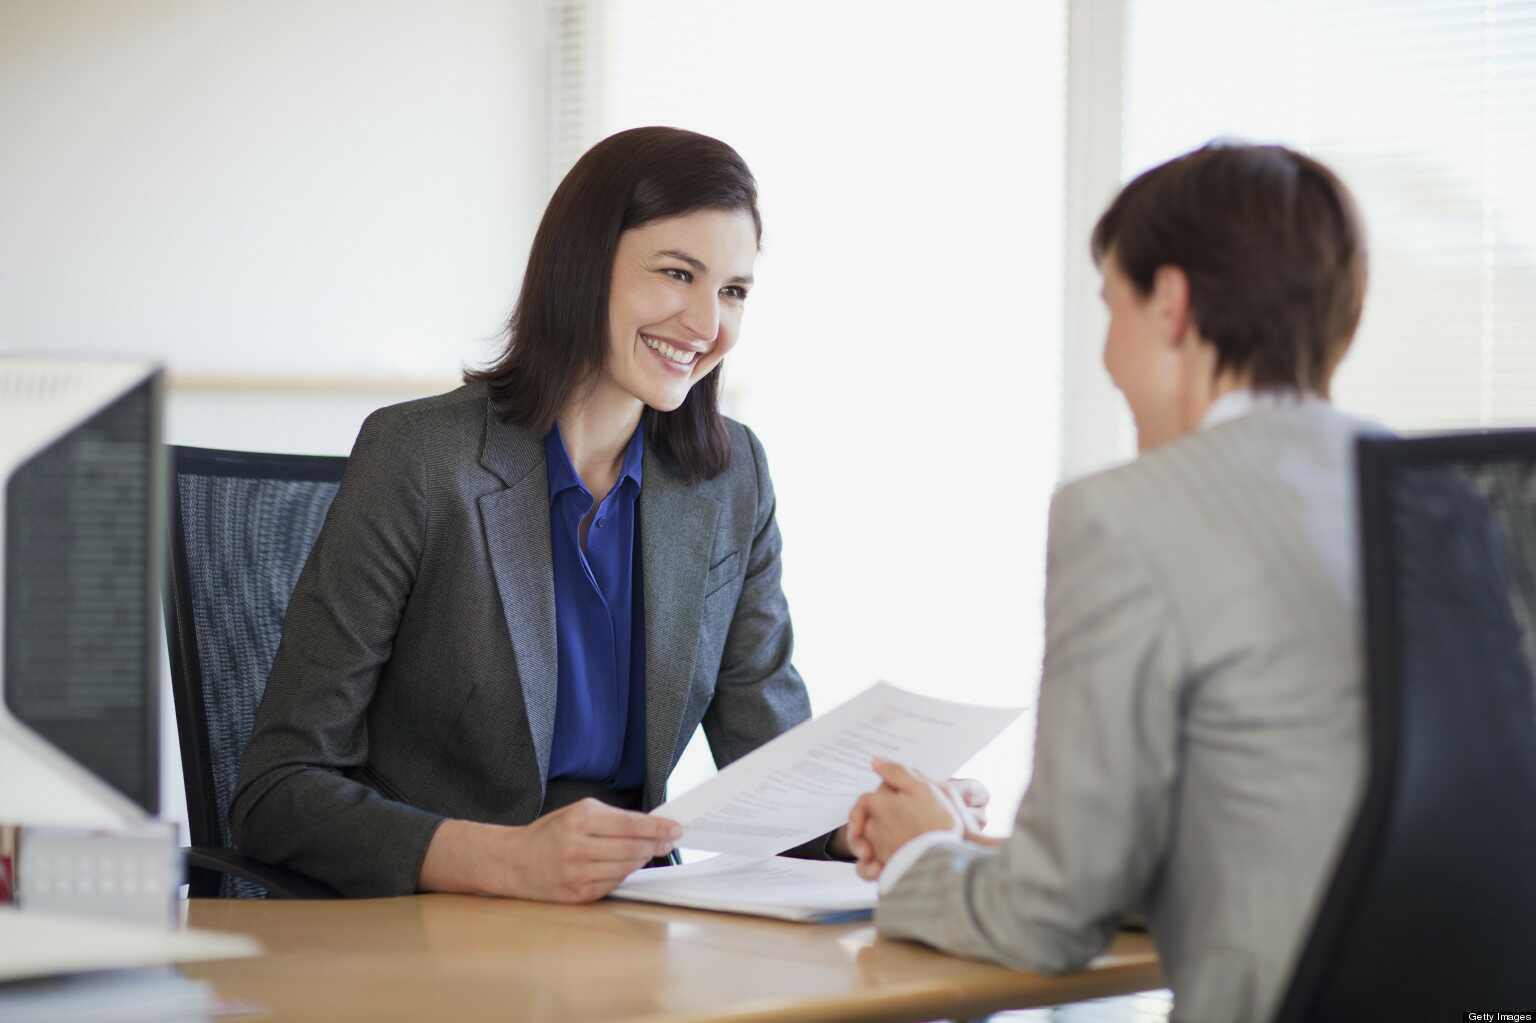 how to answer interview questions - What motivates you to do your best on the job